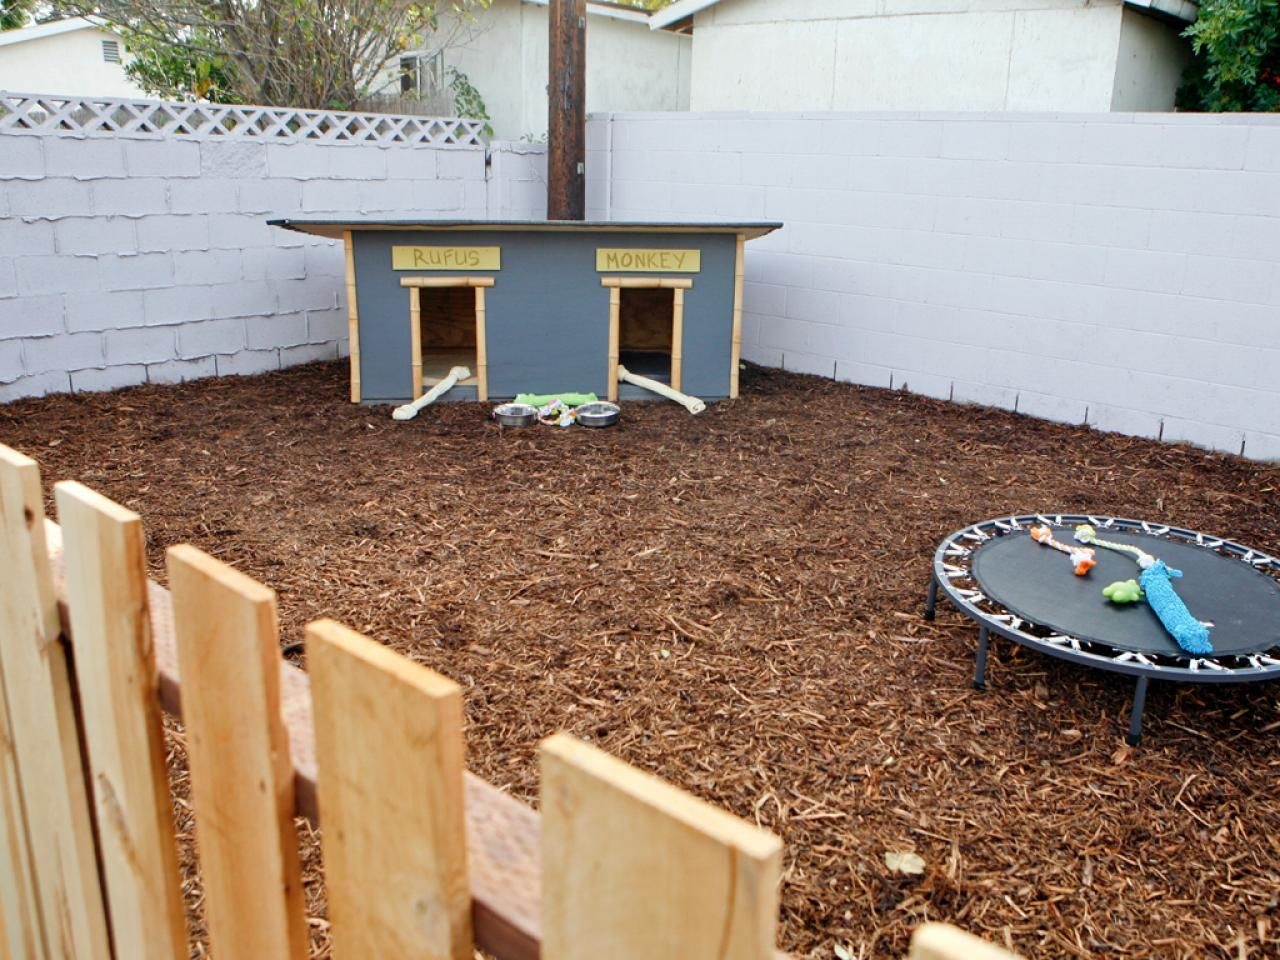 Hot Backyard Design Ideas To Try Now Grass Free Backyard Dog regarding 10 Smart Concepts of How to Craft Backyard Landscaping Ideas For Dogs